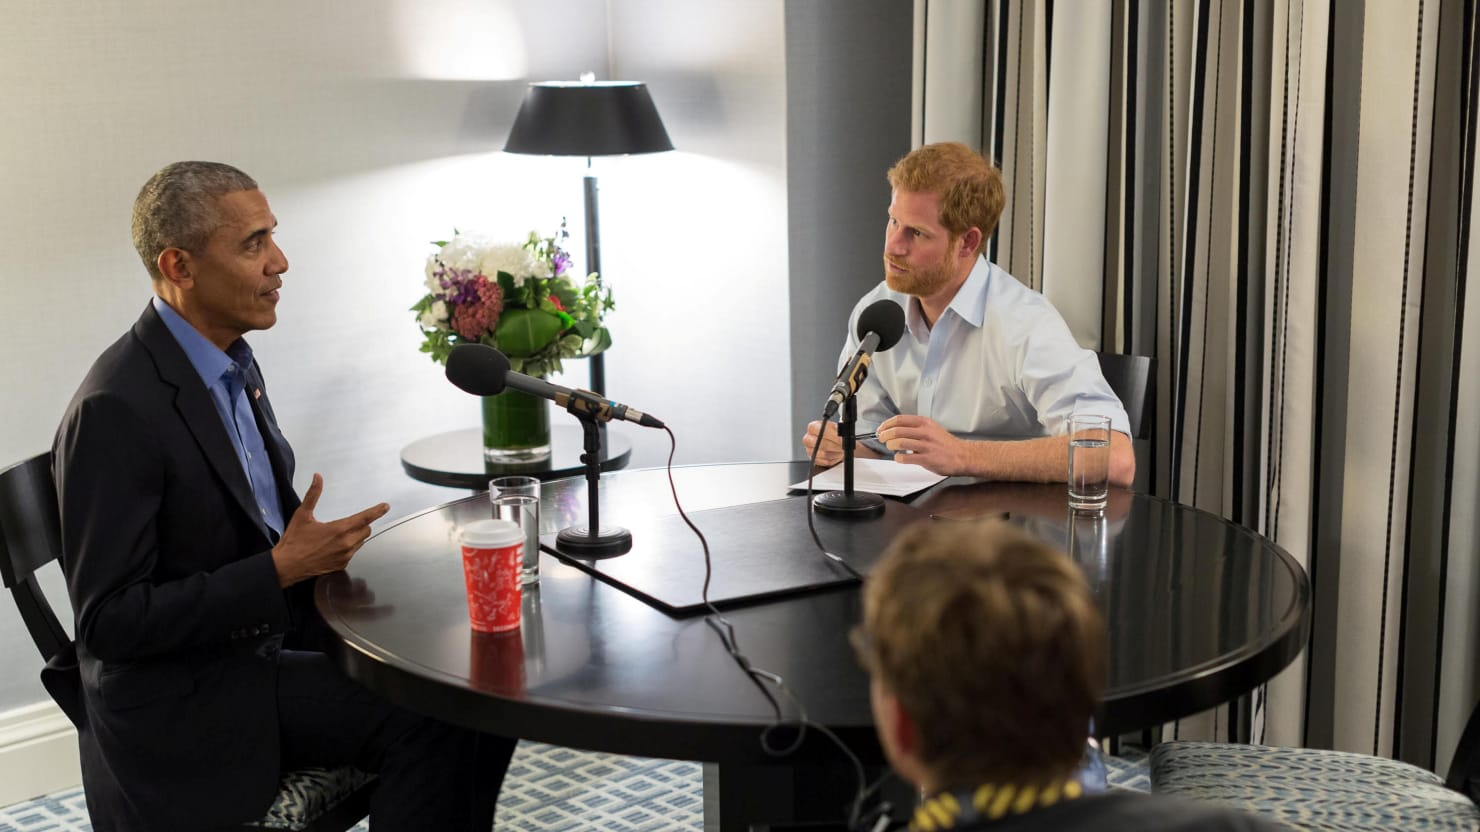 Prince Harry and Barack Obama in Conversation on the BBC